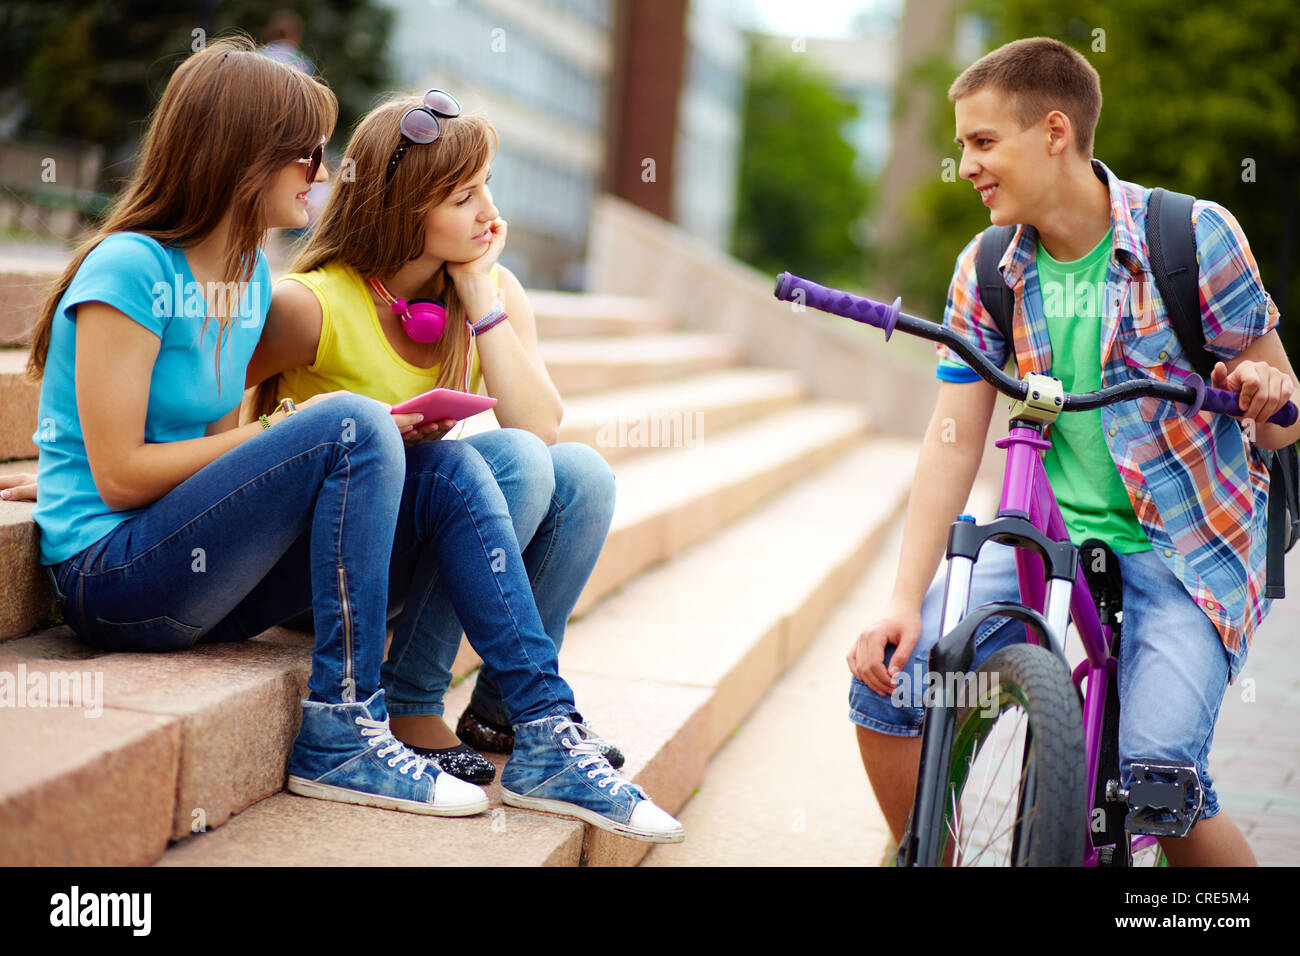 Teen girls seeming to be interested in the guy riding the bike - Stock Image